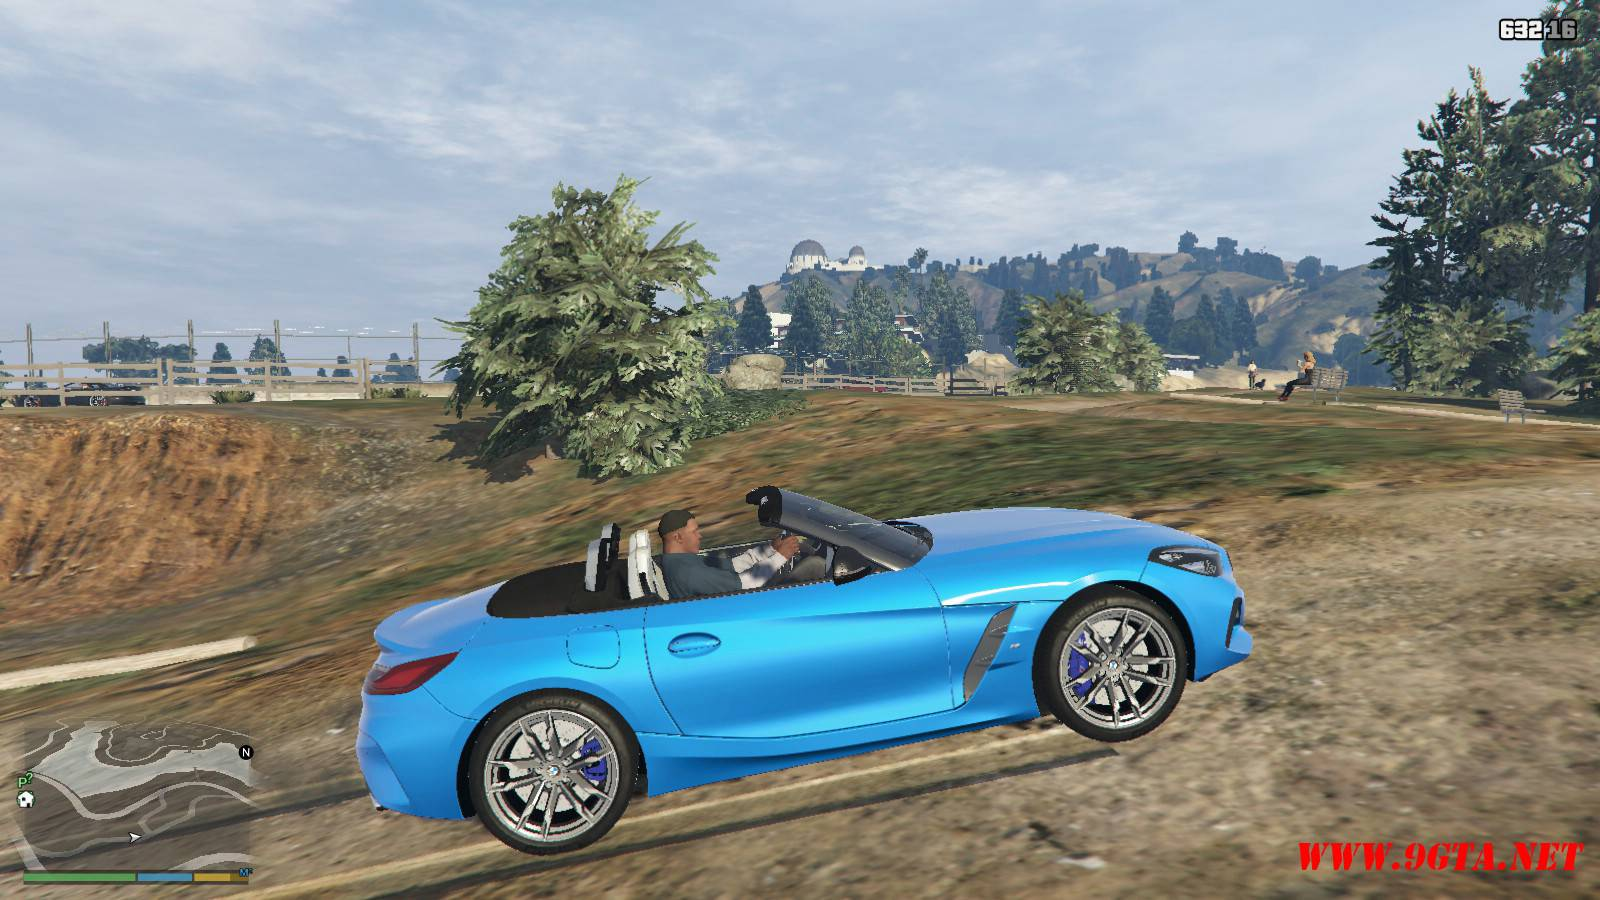 2019 BMW Z4 M40i v2.0 Mod For GTA5 (8)